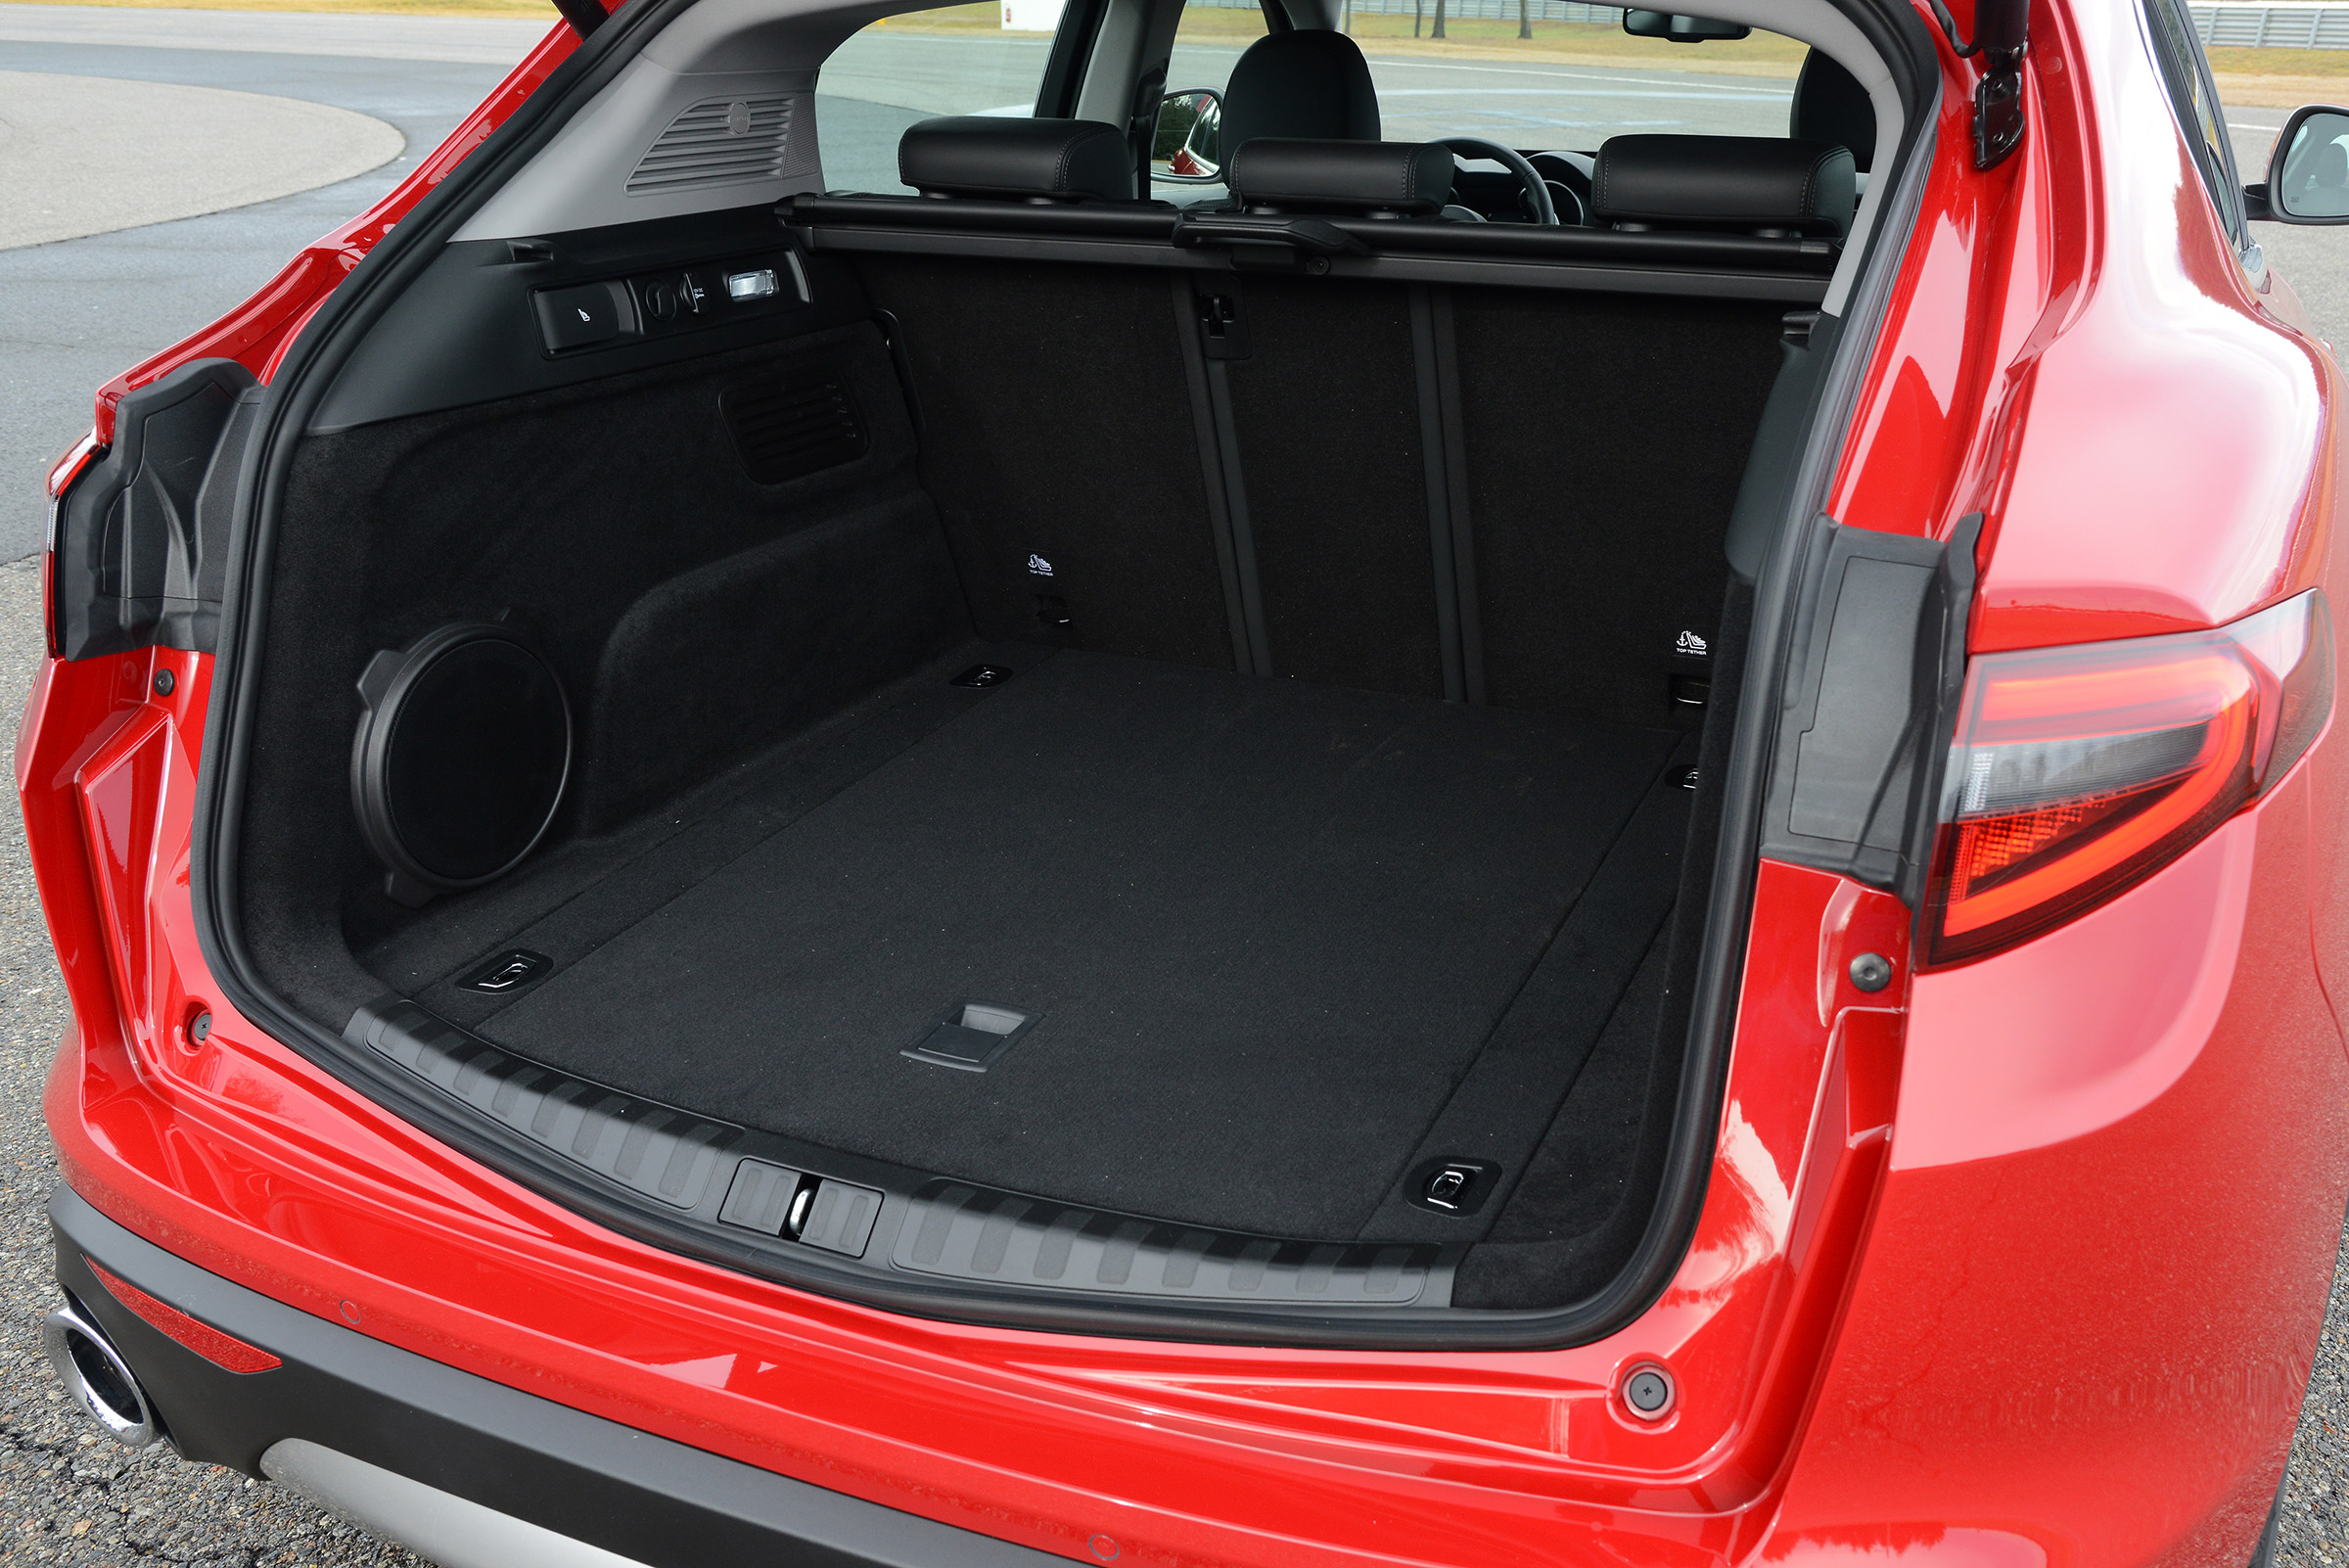 2017 Alfa Romeo Stelvio Interior View Cargo Trunk (Photo 13 of 23)